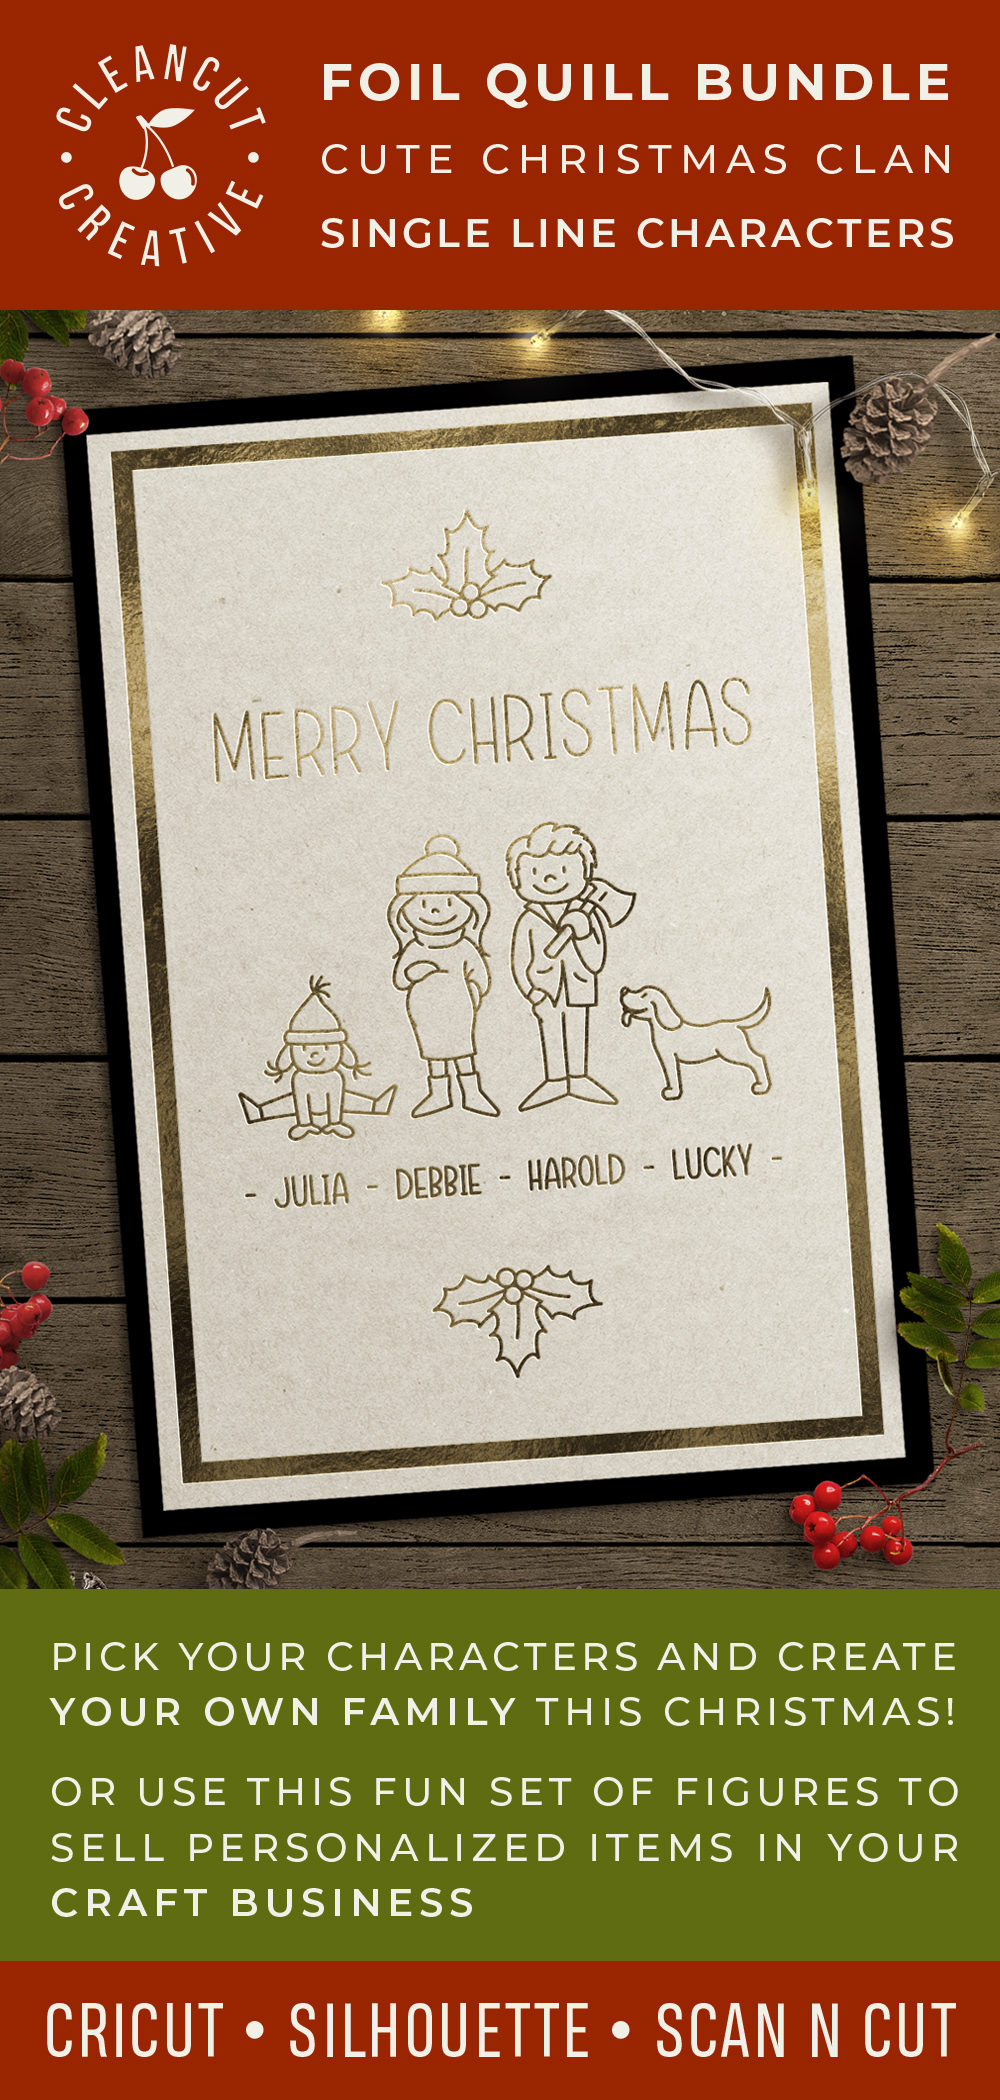 Foil Quill Edition - Cute Christmas Clan - family figures example image 5